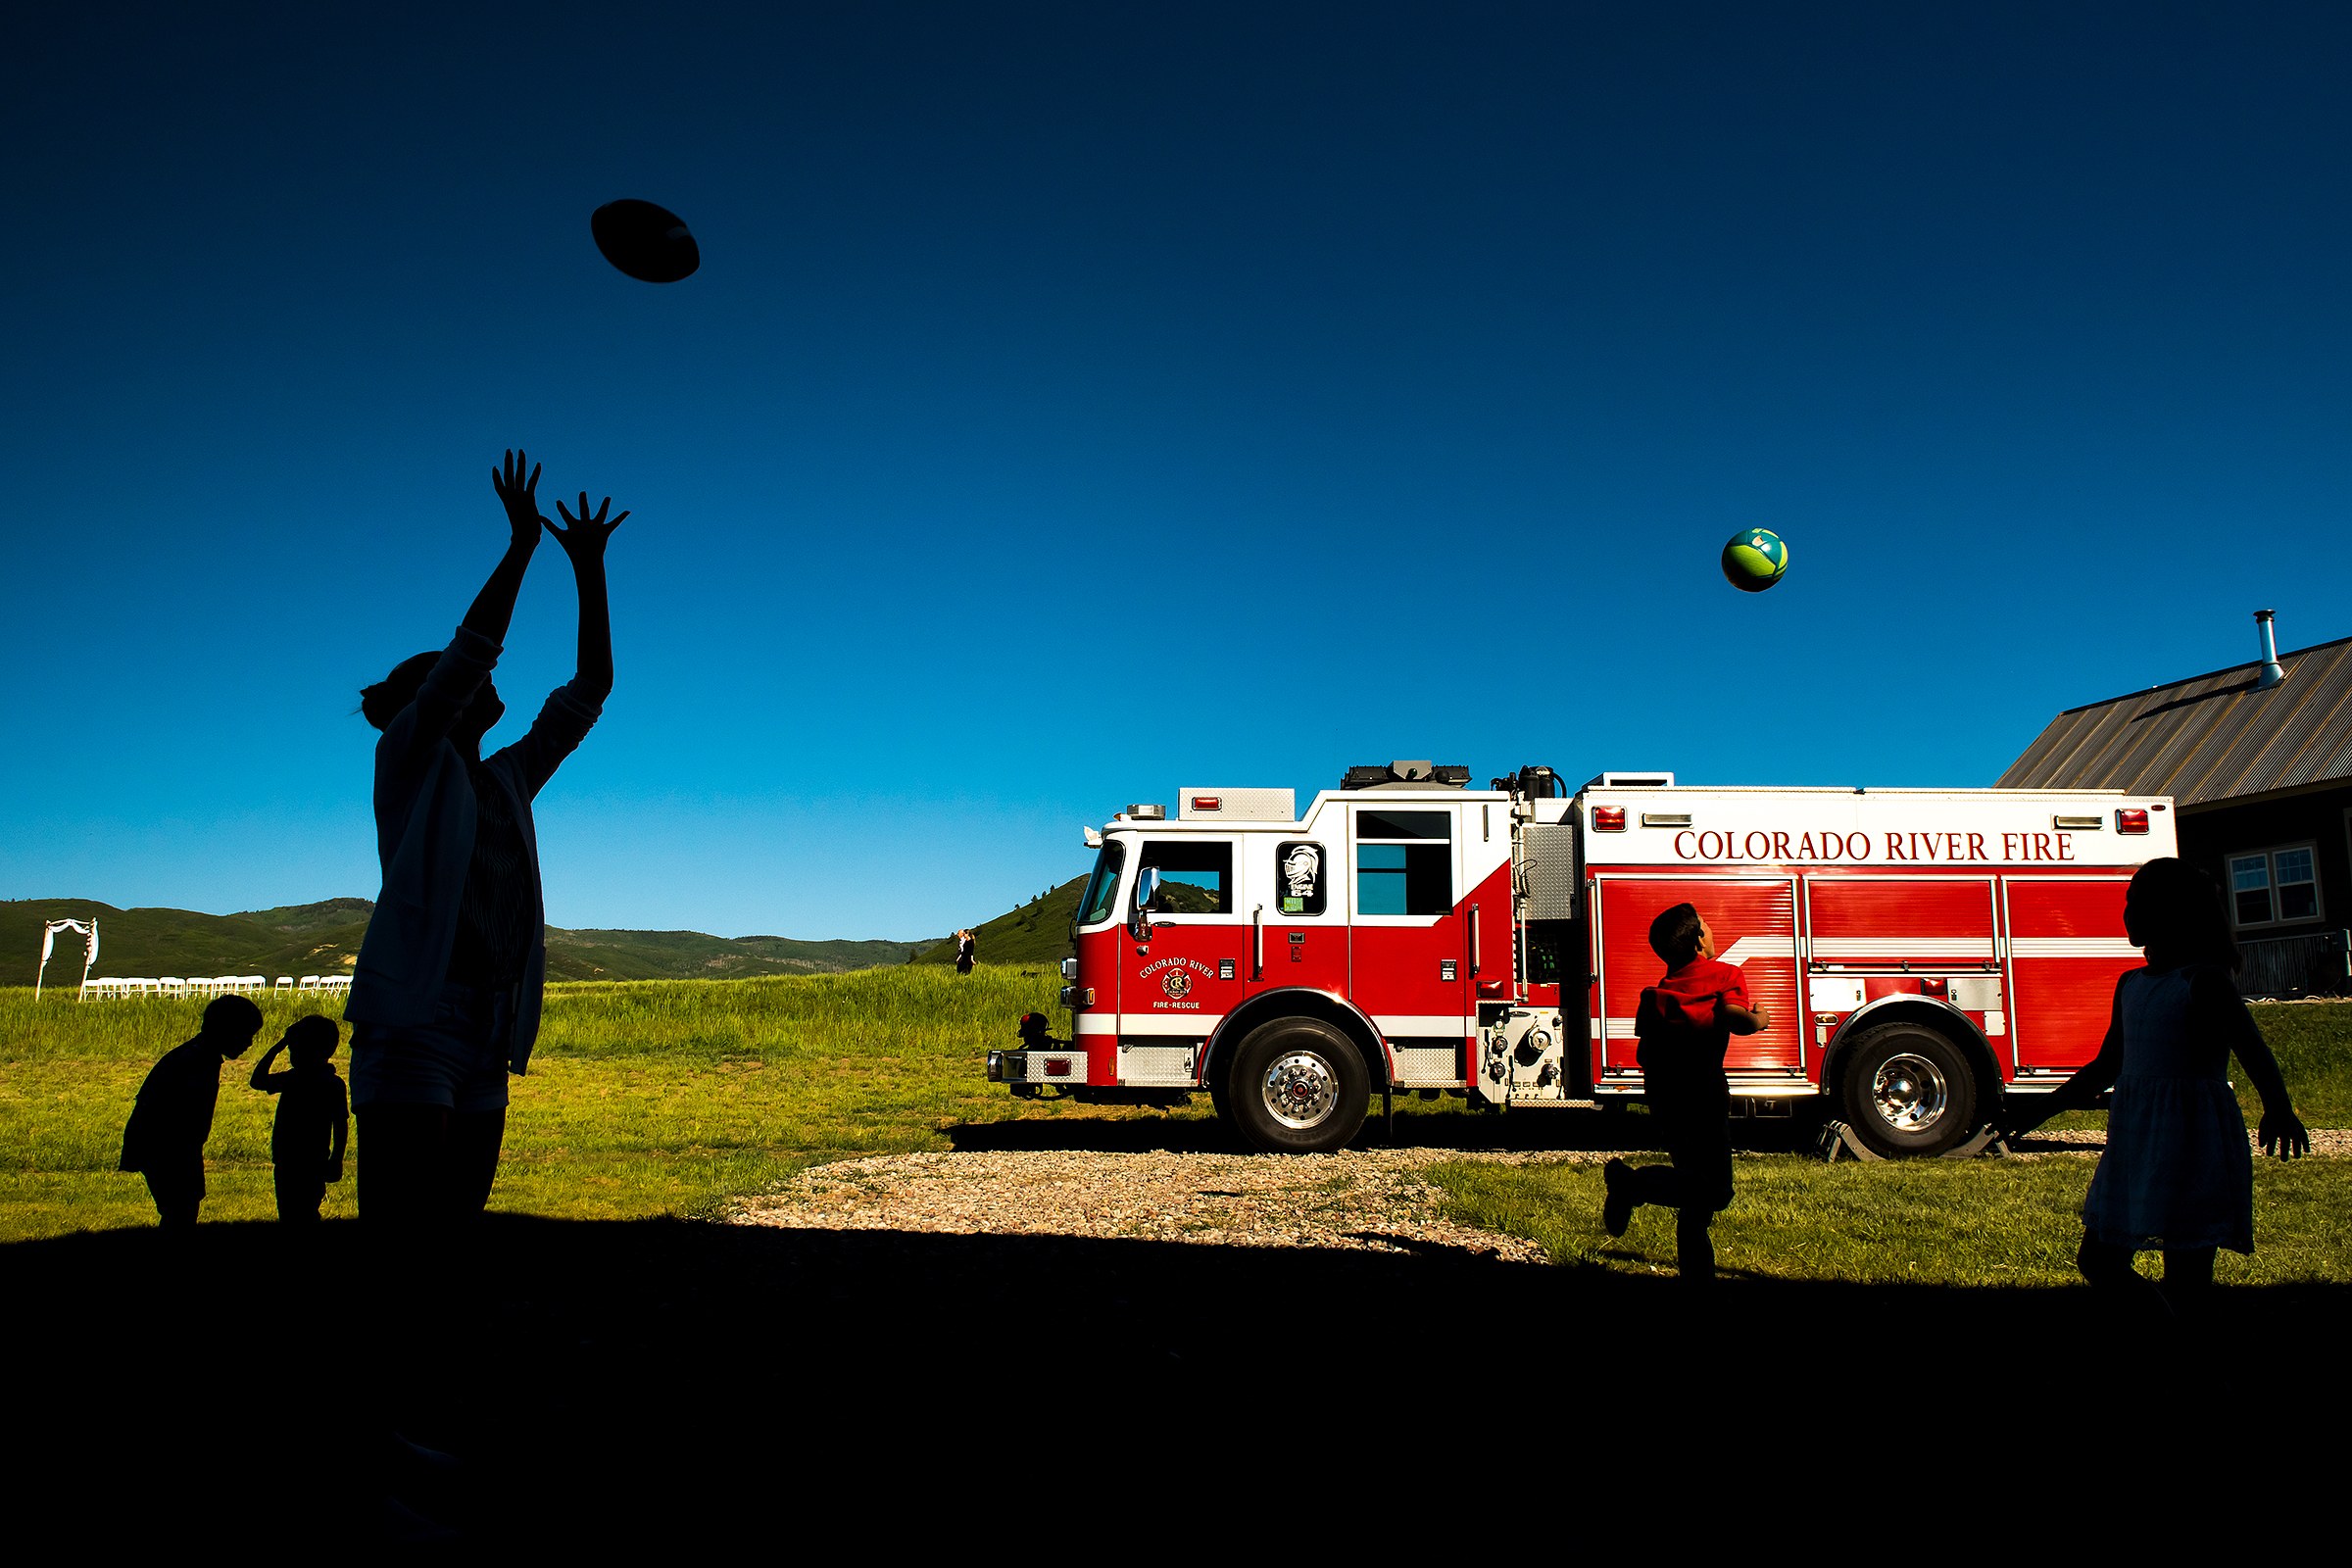 Firetruck and playing children in foreground of ceremony site - photo by J La Plante Photo